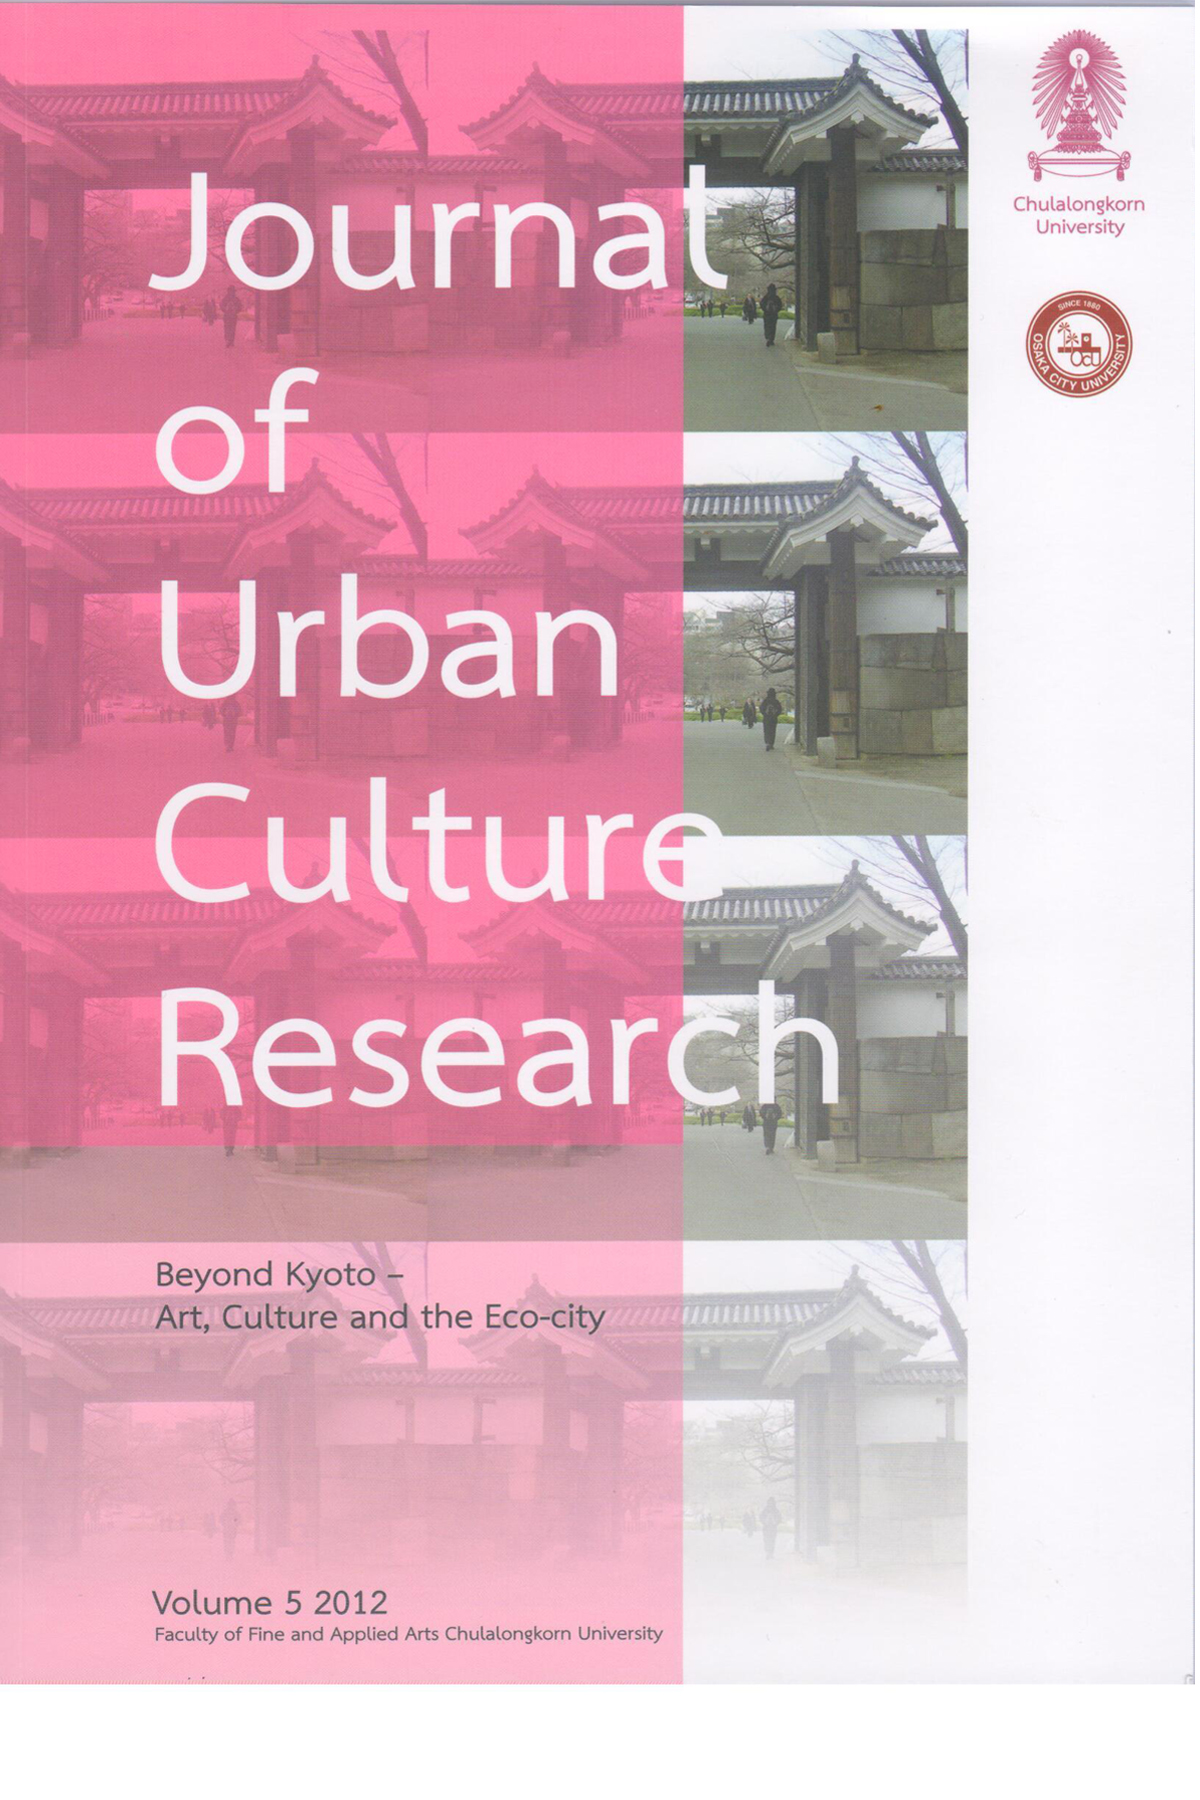 Journal of Urban Culture Research - Cover image of a gate in Tokyo, Japan was provided by Alan Kinear